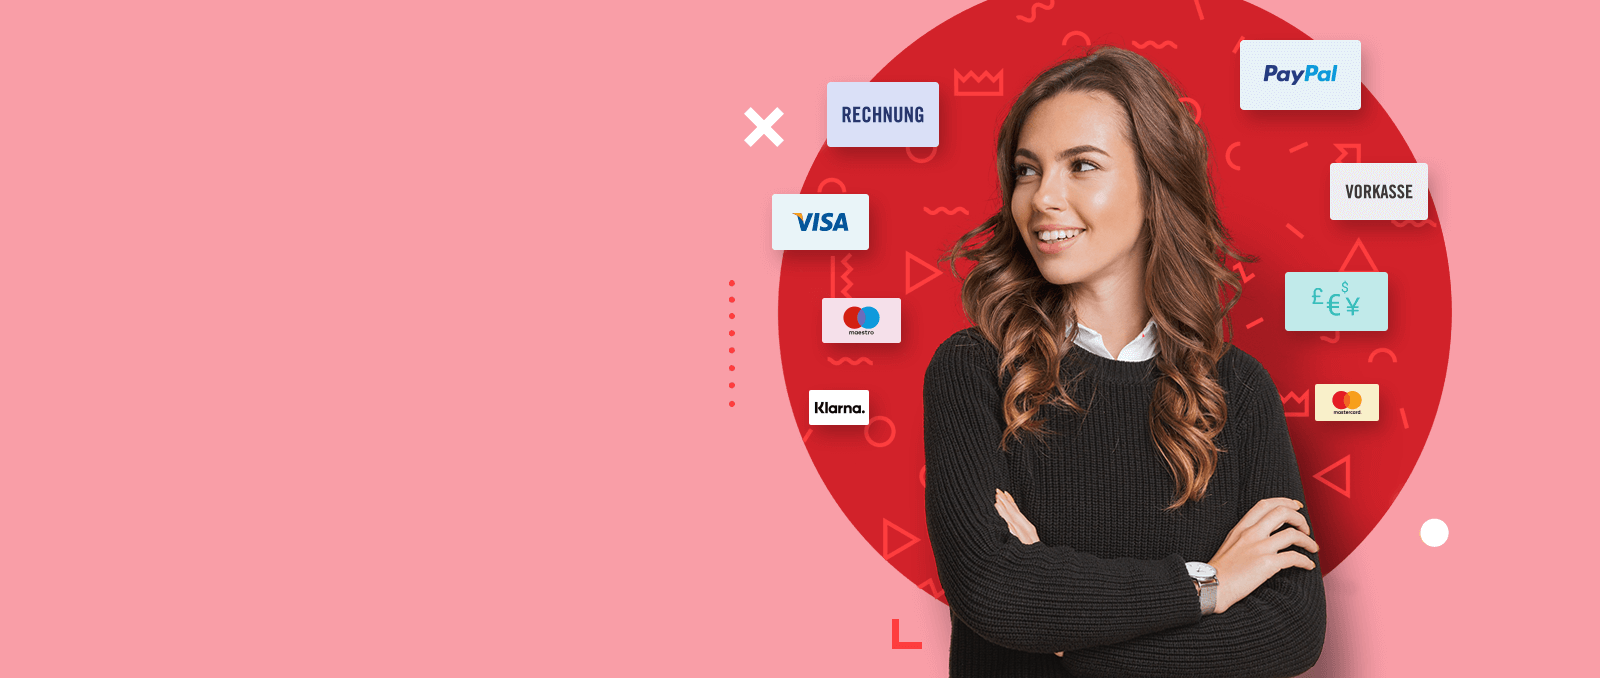 finito-payment-header-3